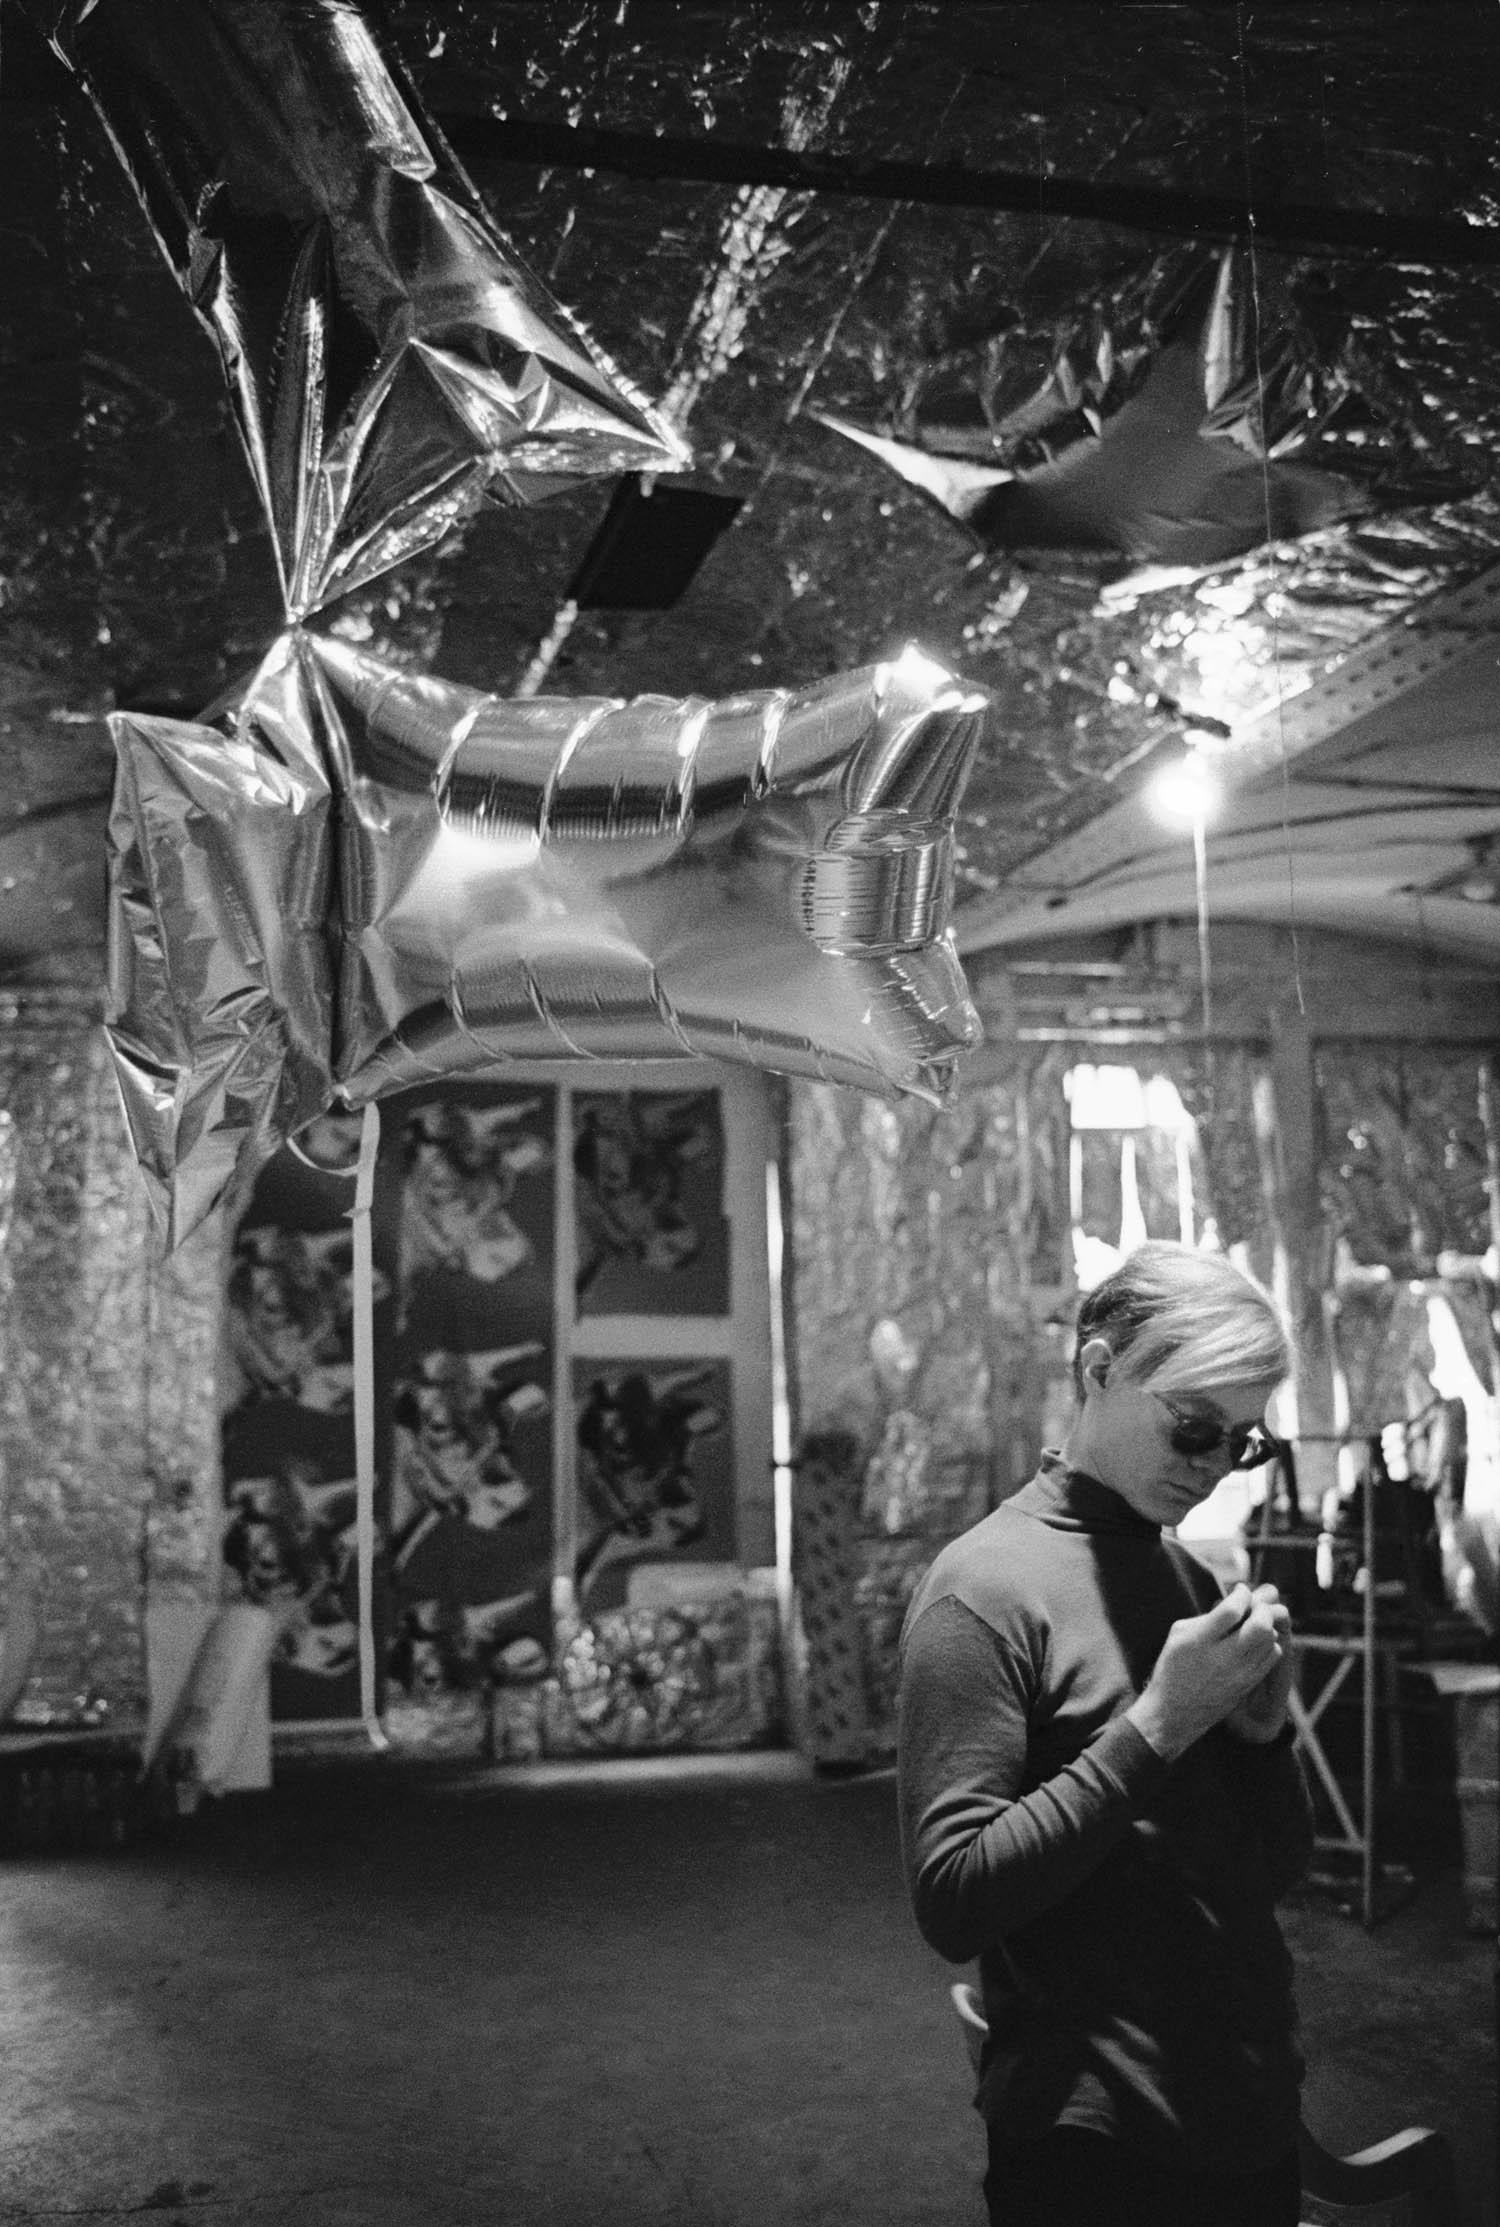 Warhol with 'Silver Clouds' in Factory